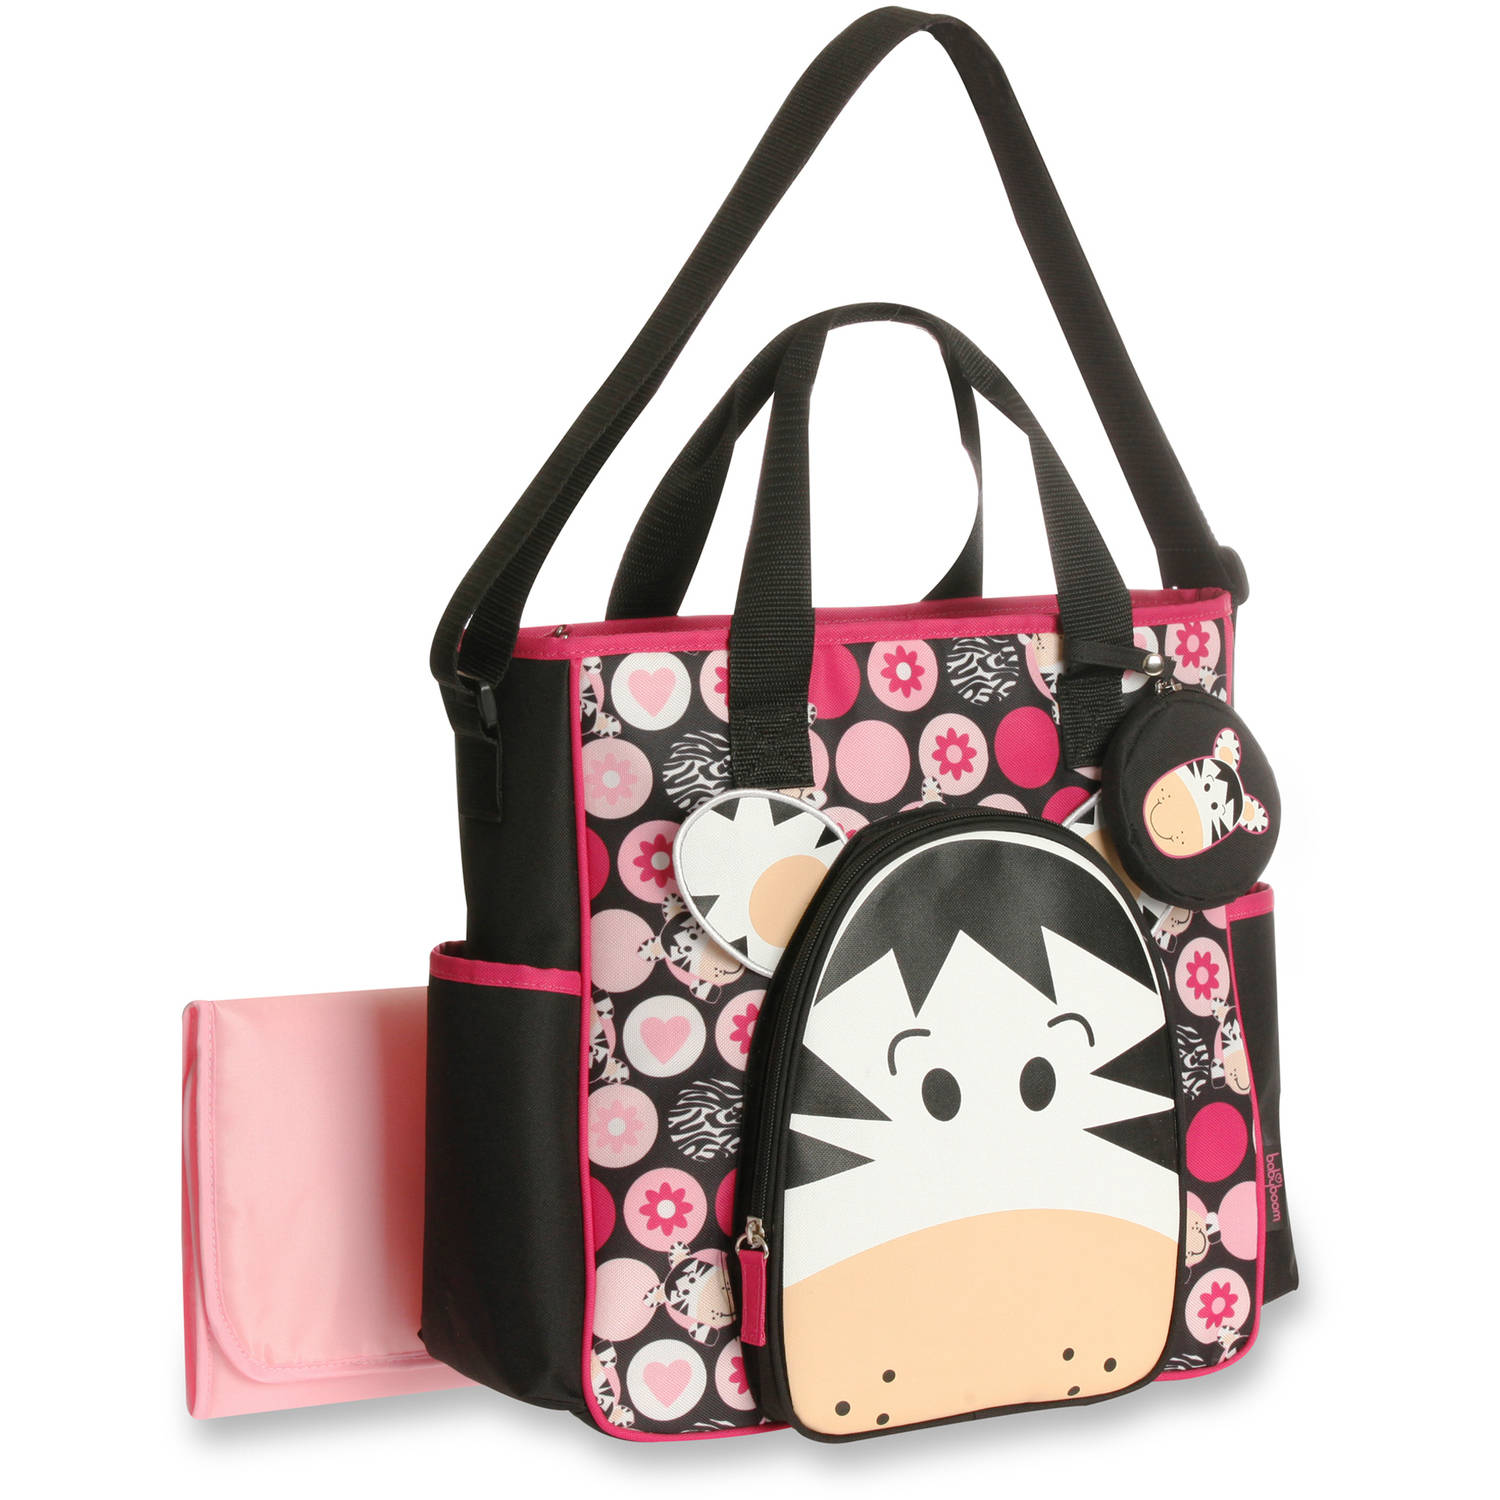 Baby Boom Zebra Face Tote Diaper Bag by Baby Boom